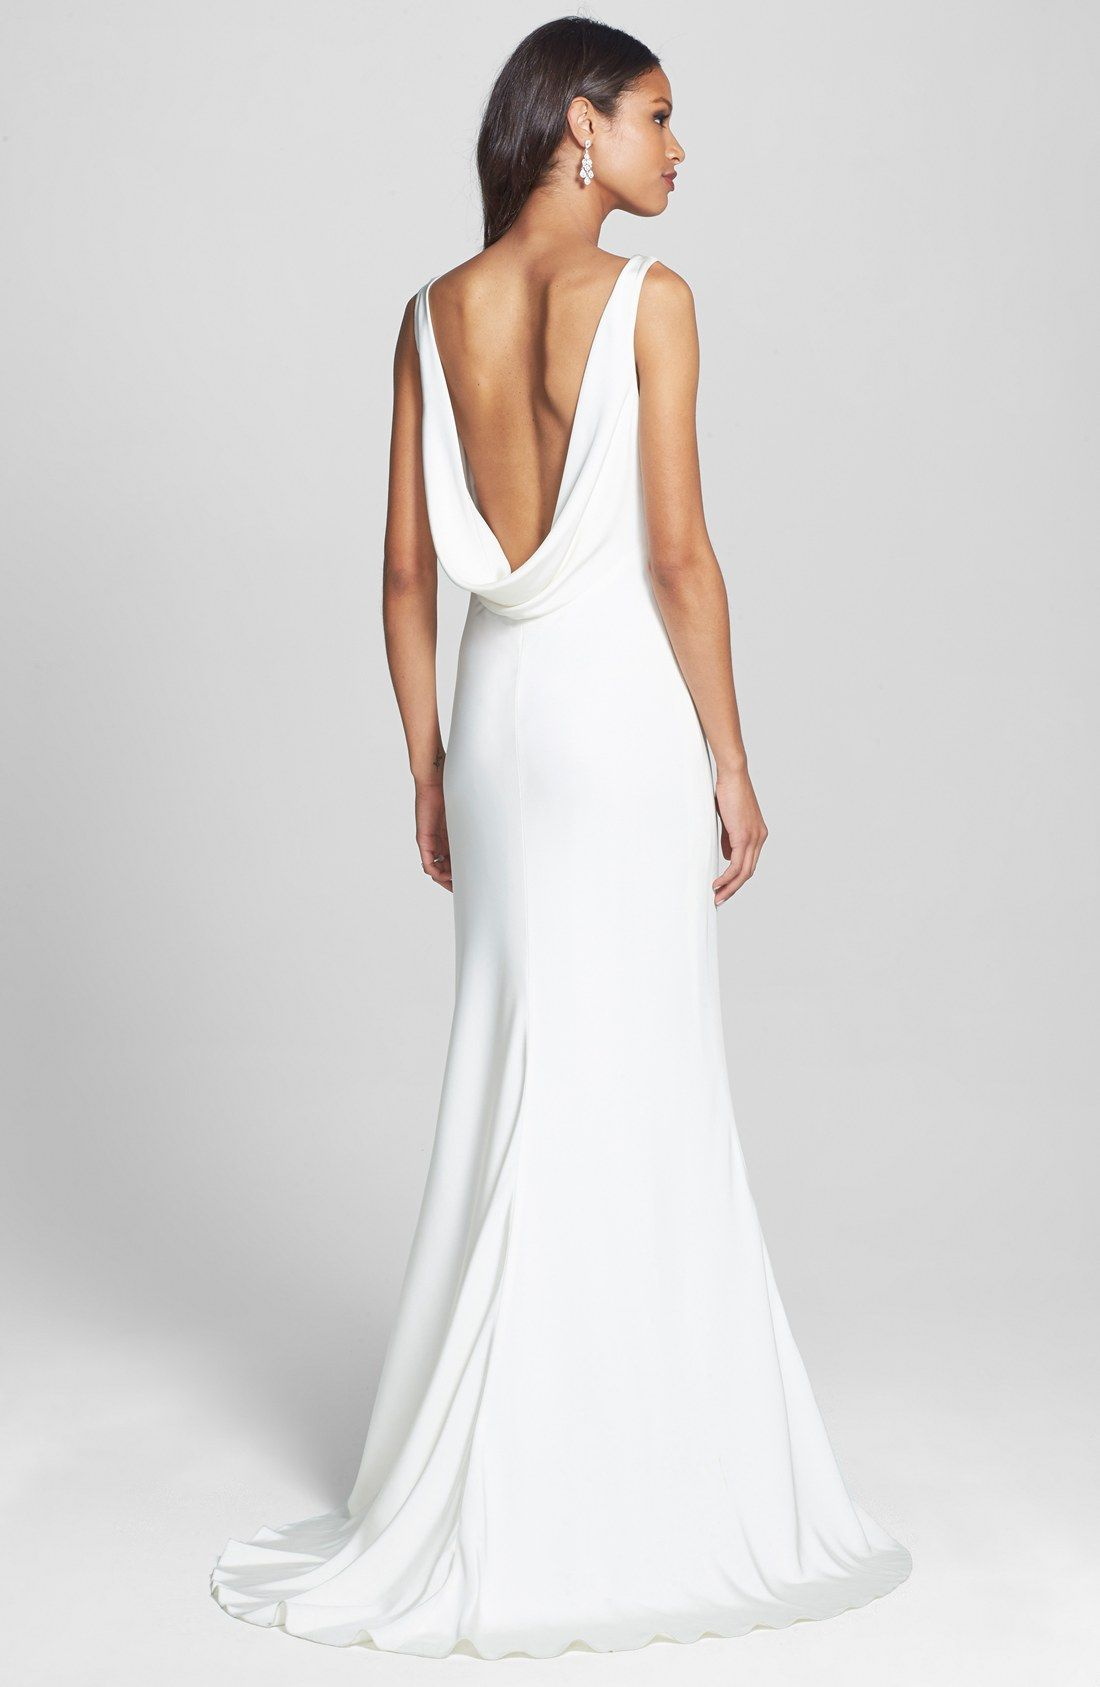 The Neckline On This Wedding Gown Is Stunning